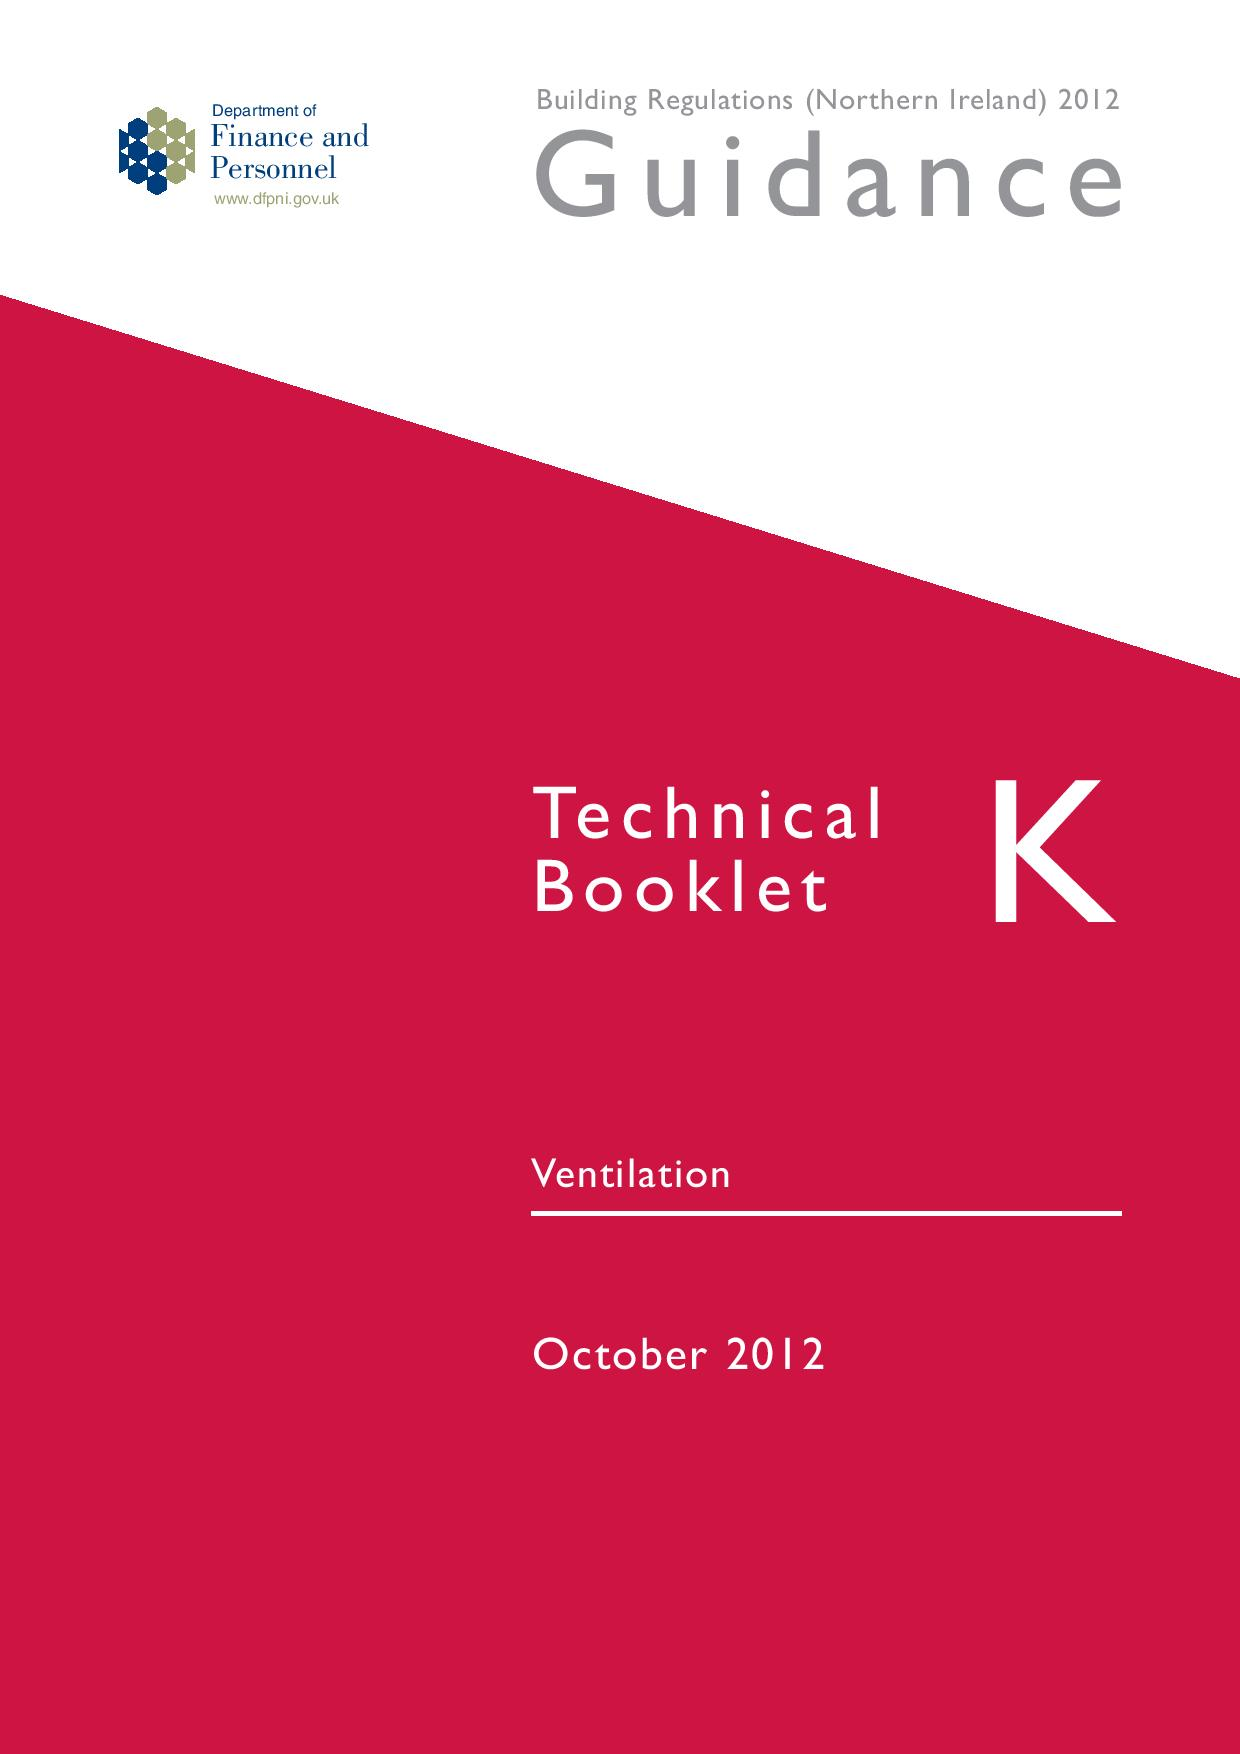 Technical Standards Document K-page-001